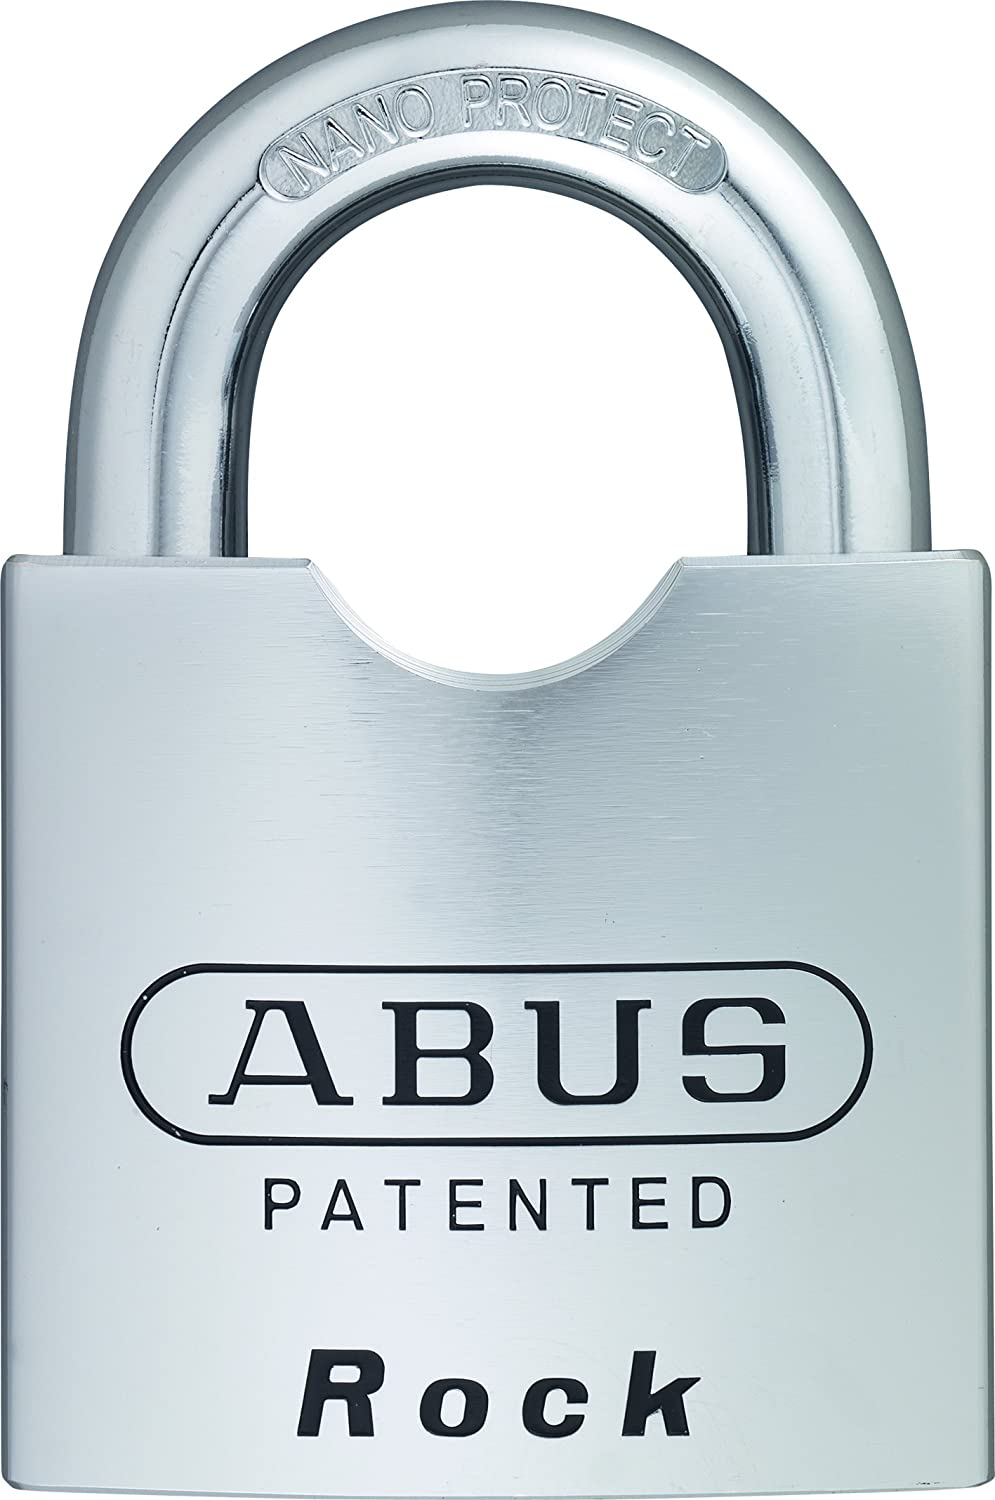 Abus 83 80 300 S2 Rekeyable Schlage Solid Steel 80mm Body 15 Inch Series Wiring Diagram Shackle Padlock Zero Bitted Keyed Padlocks Amazon Canada